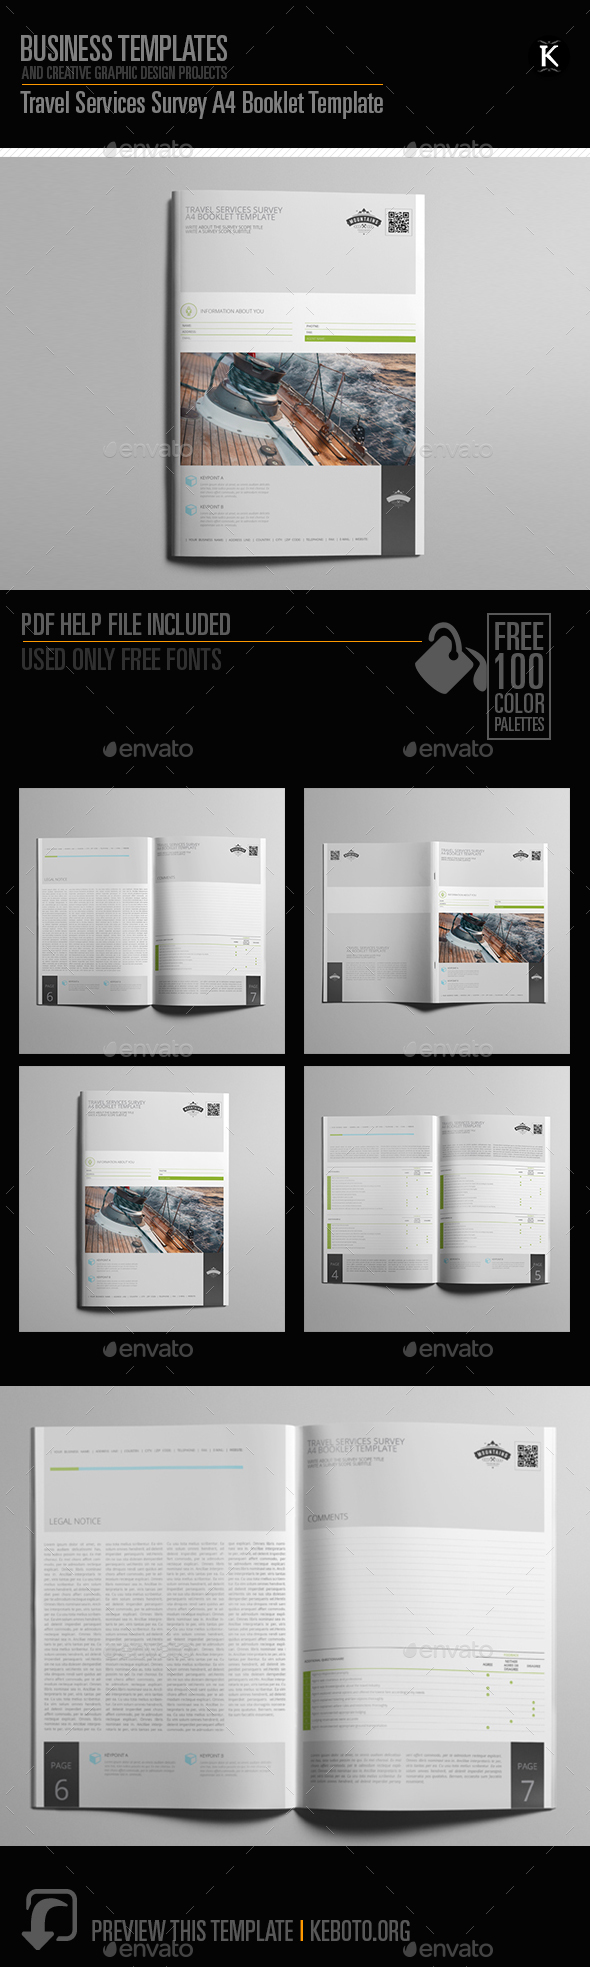 GraphicRiver Travel Services Survey A4 Booklet Template 20549846